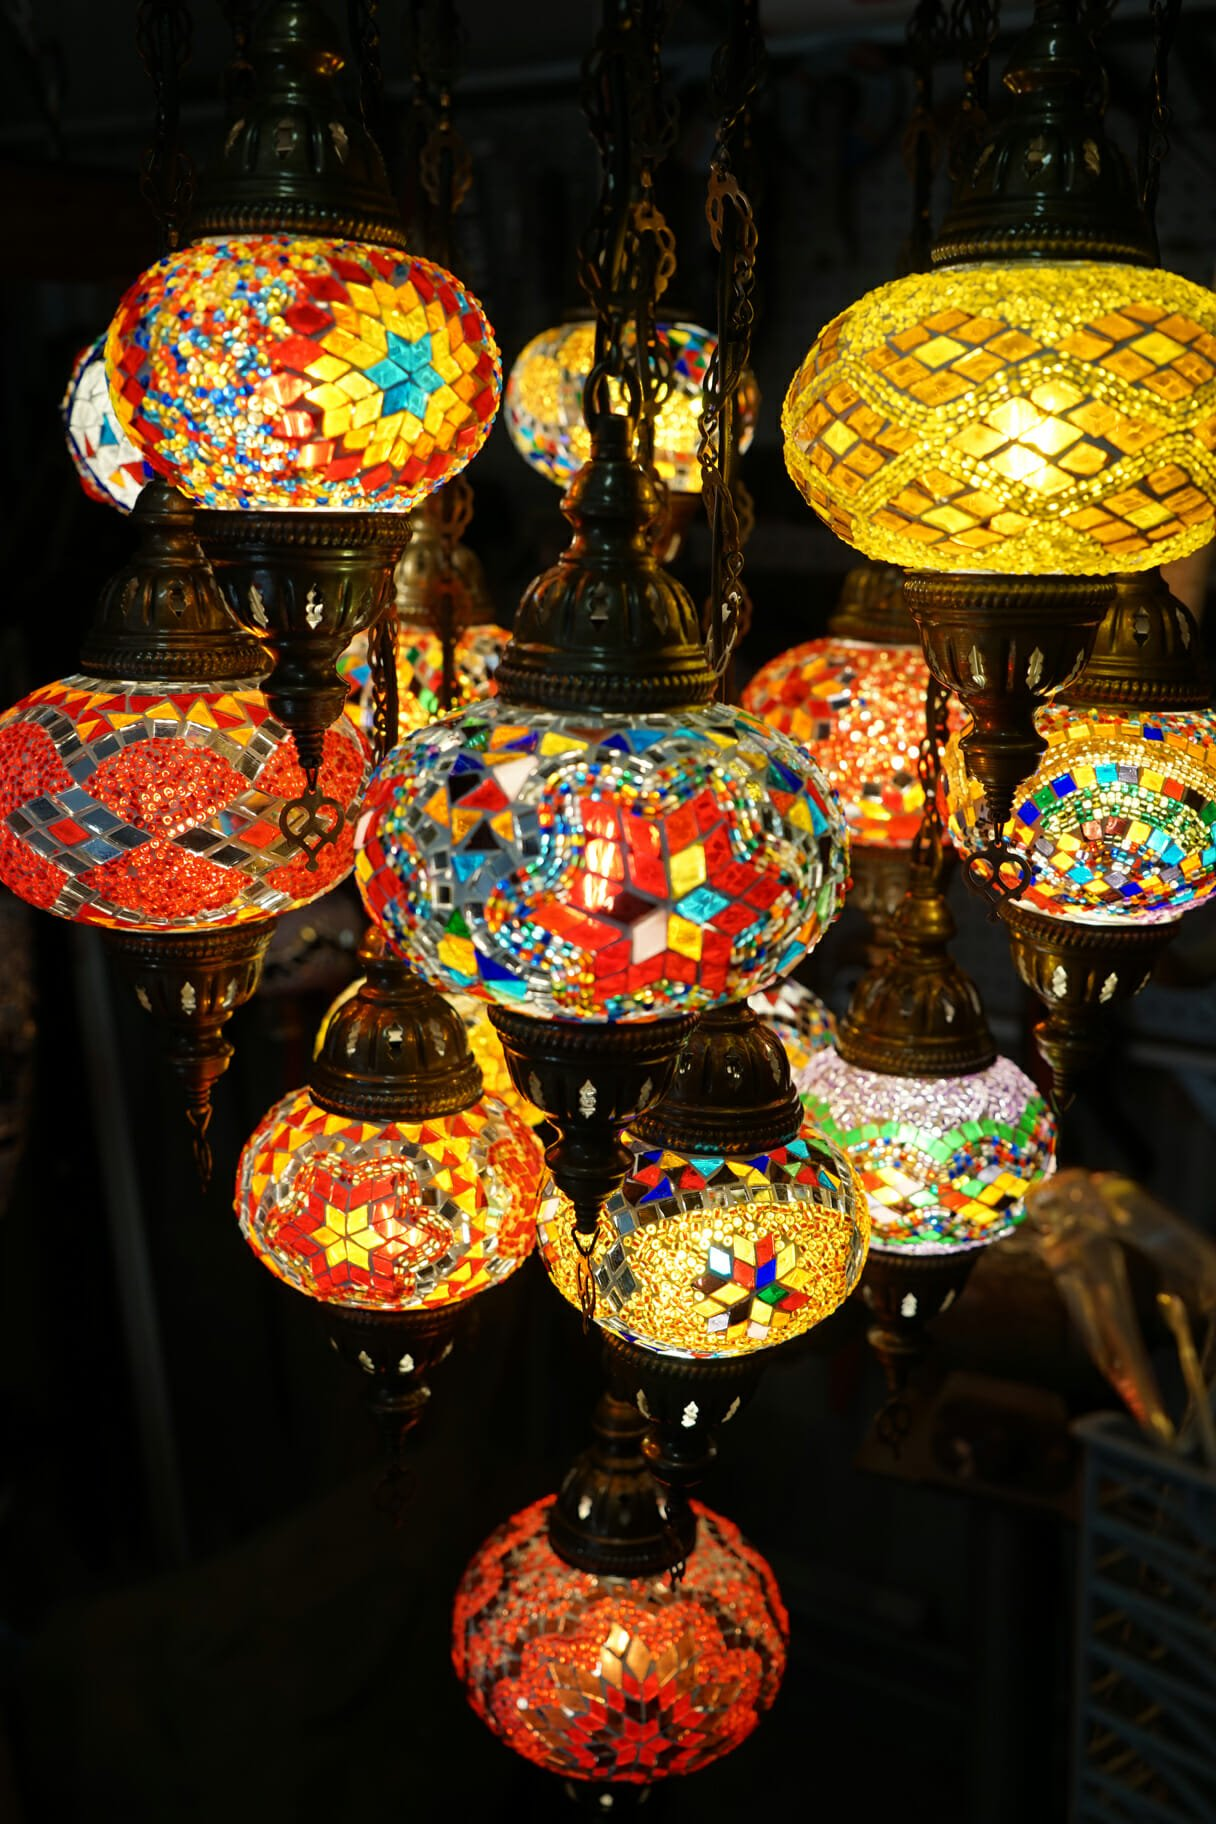 16 piece mosaic chandelier 1 the dancing pixie turkish moroccan 16 piece mosaic chandelier close up aloadofball Images